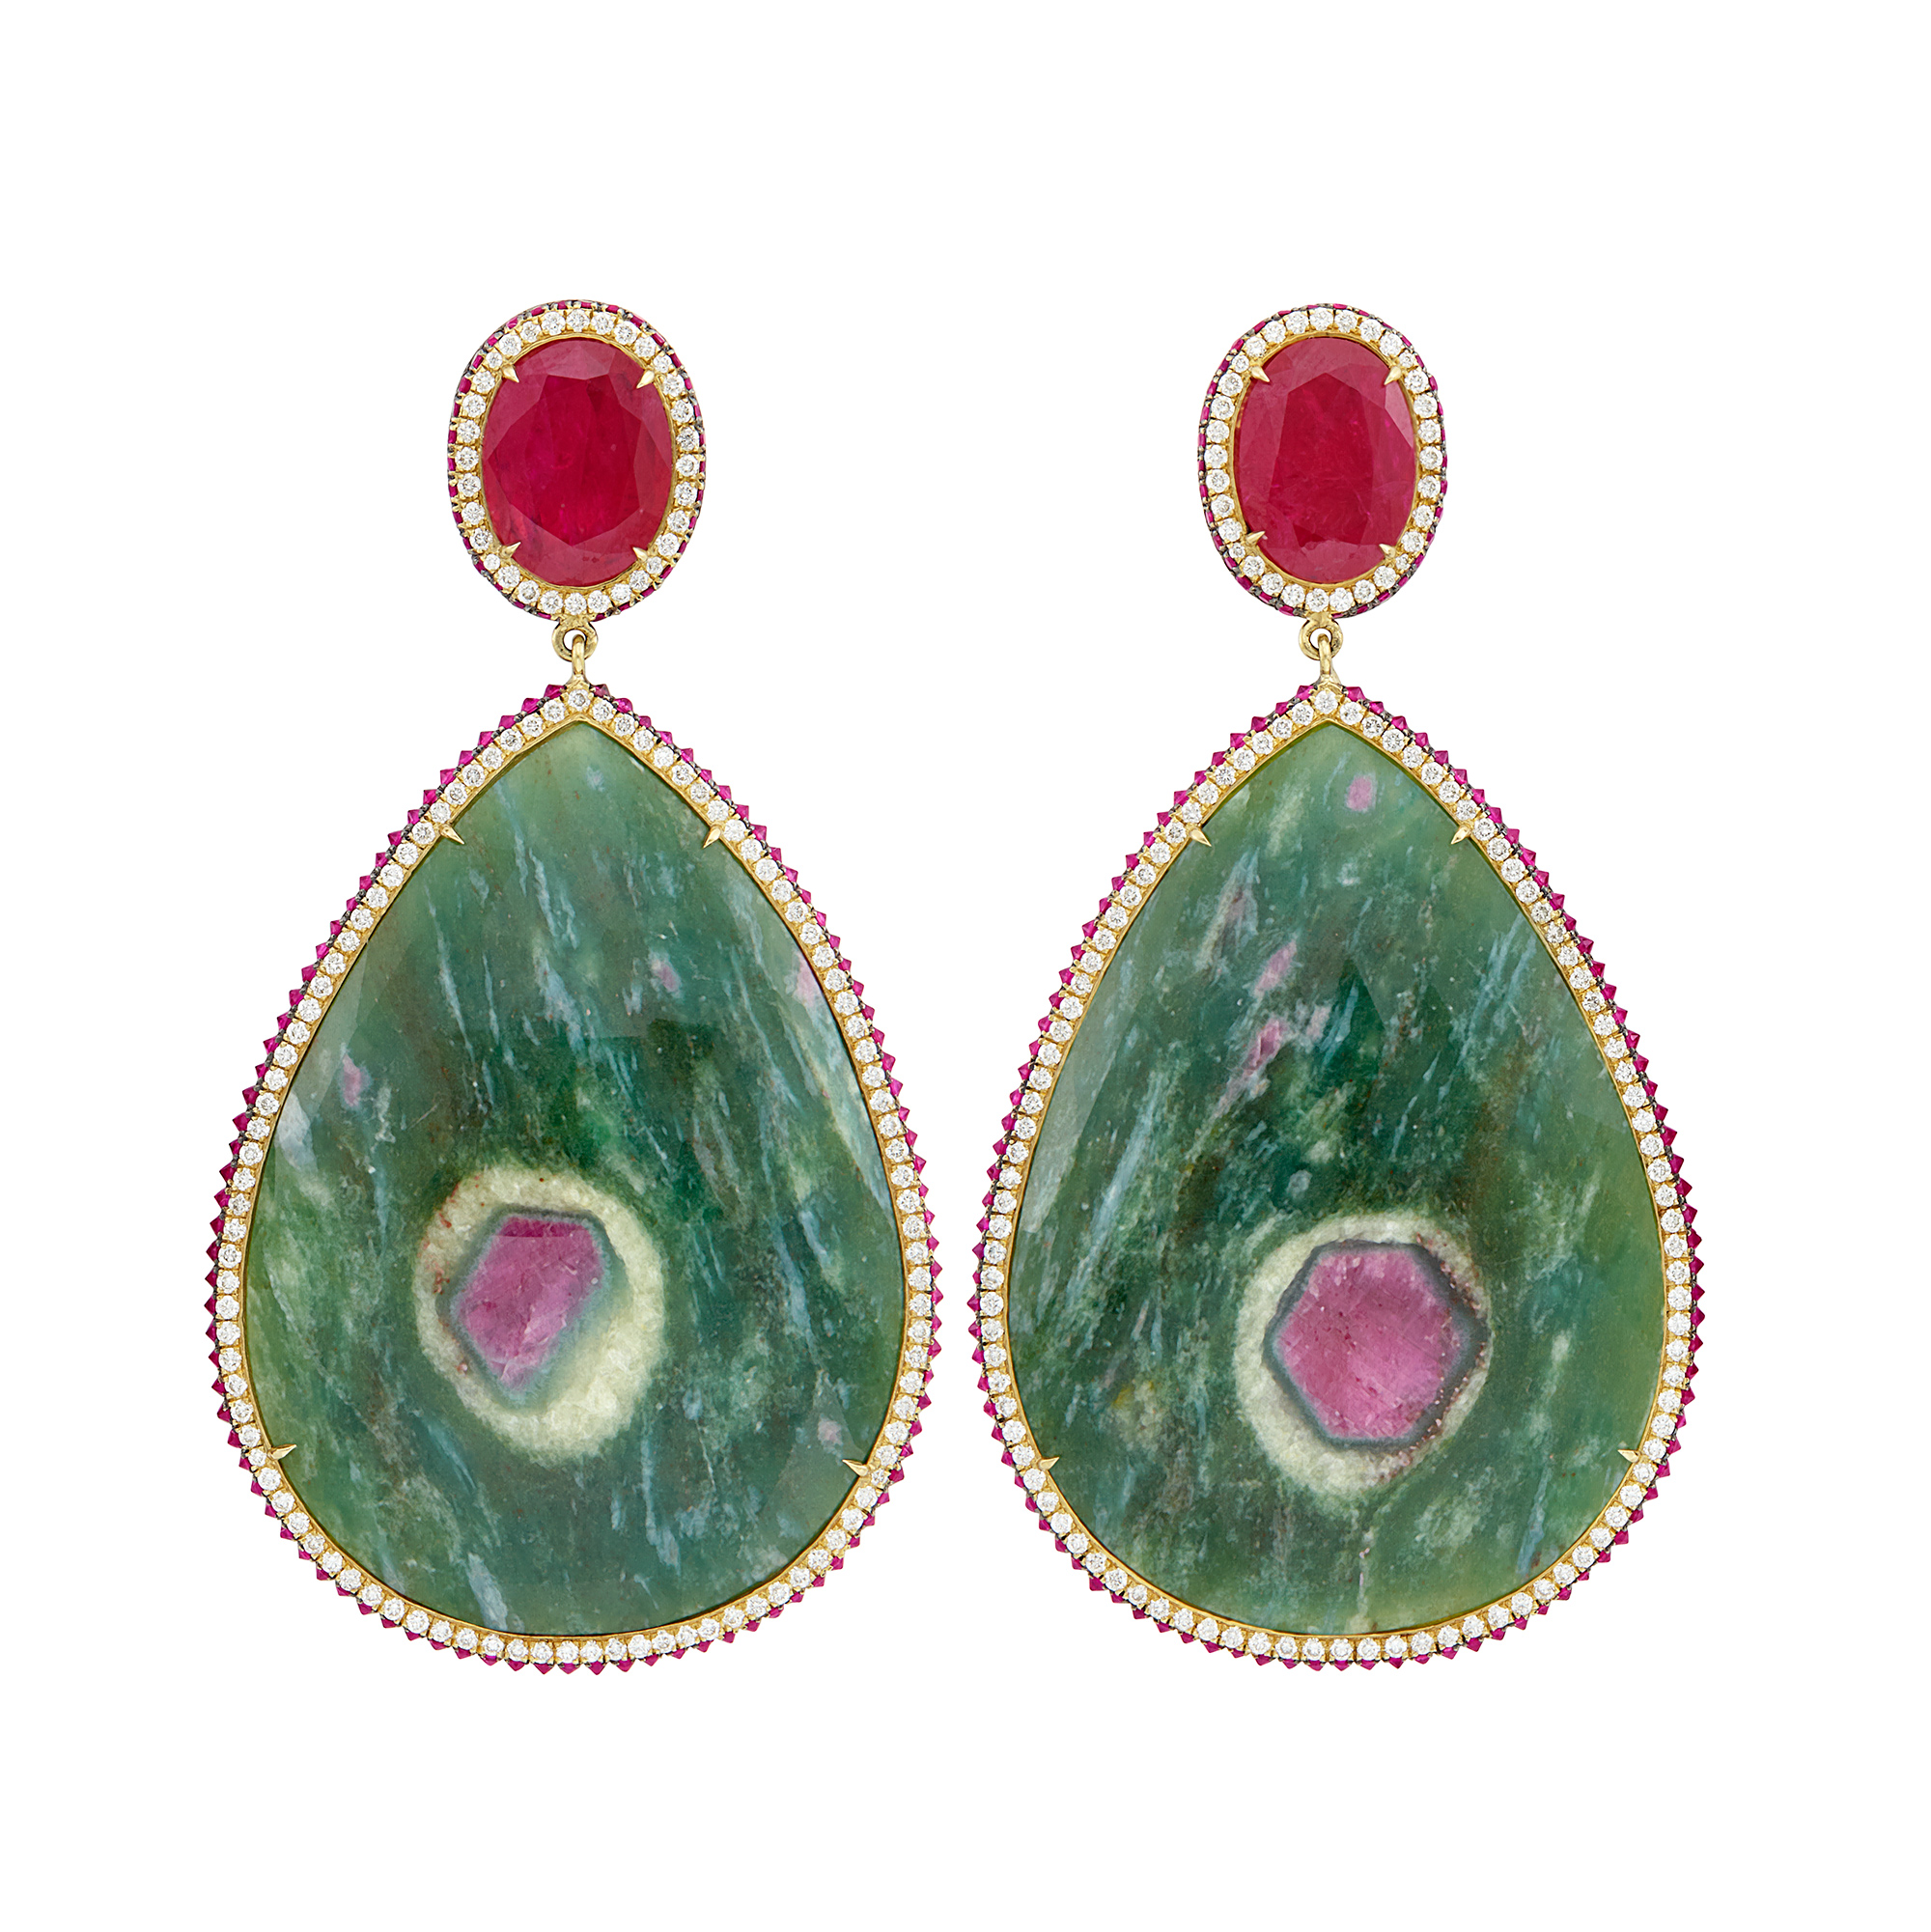 Lot image - Pair of Gold, Ruby in Zoisite and Diamond Pendant-Earrings, Lugano